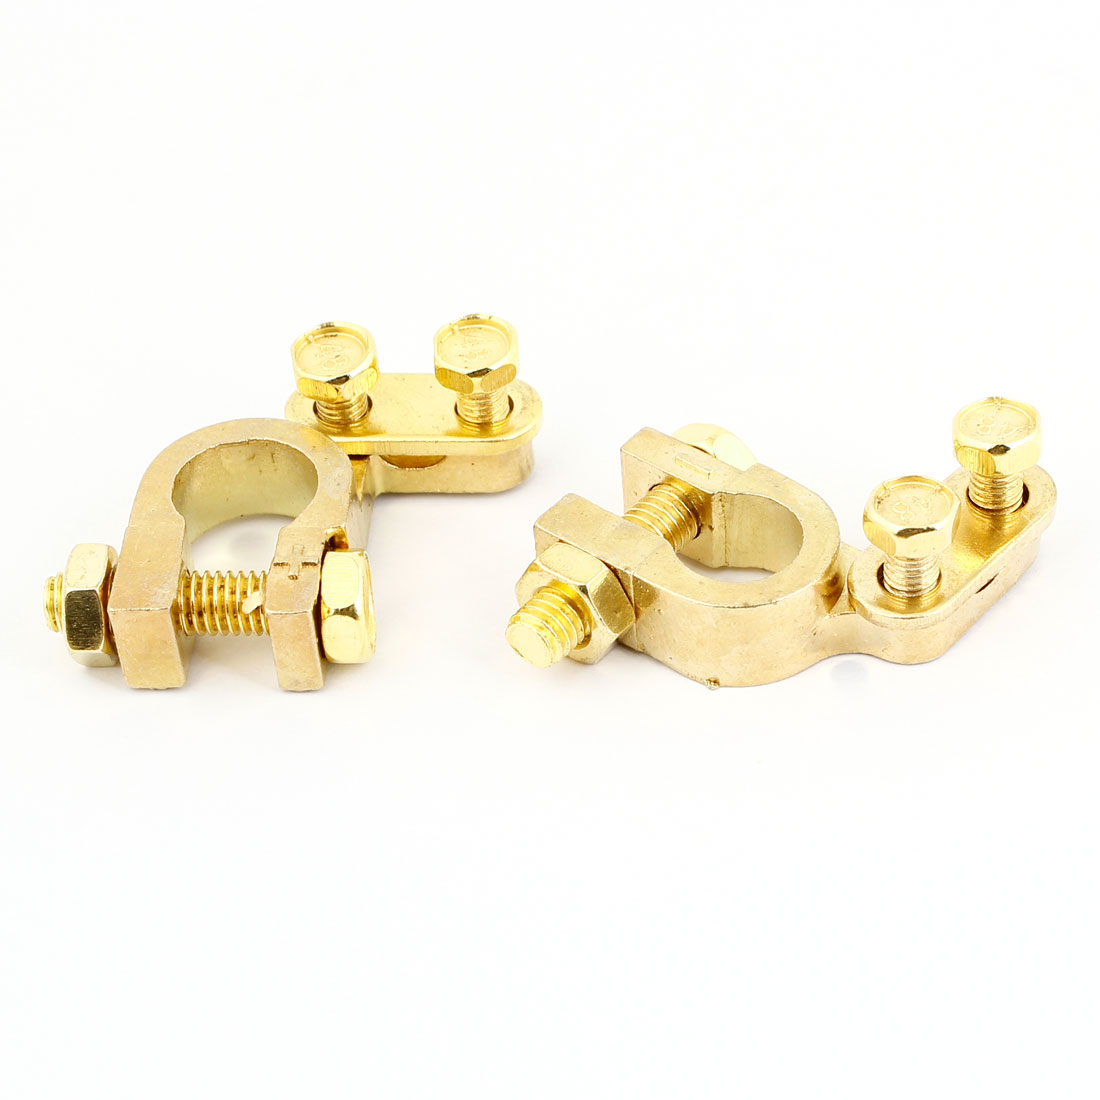 2 Pcs Aluminum Alloy Battery Terminal Clamp Clips Gold Tone for Automobile Car